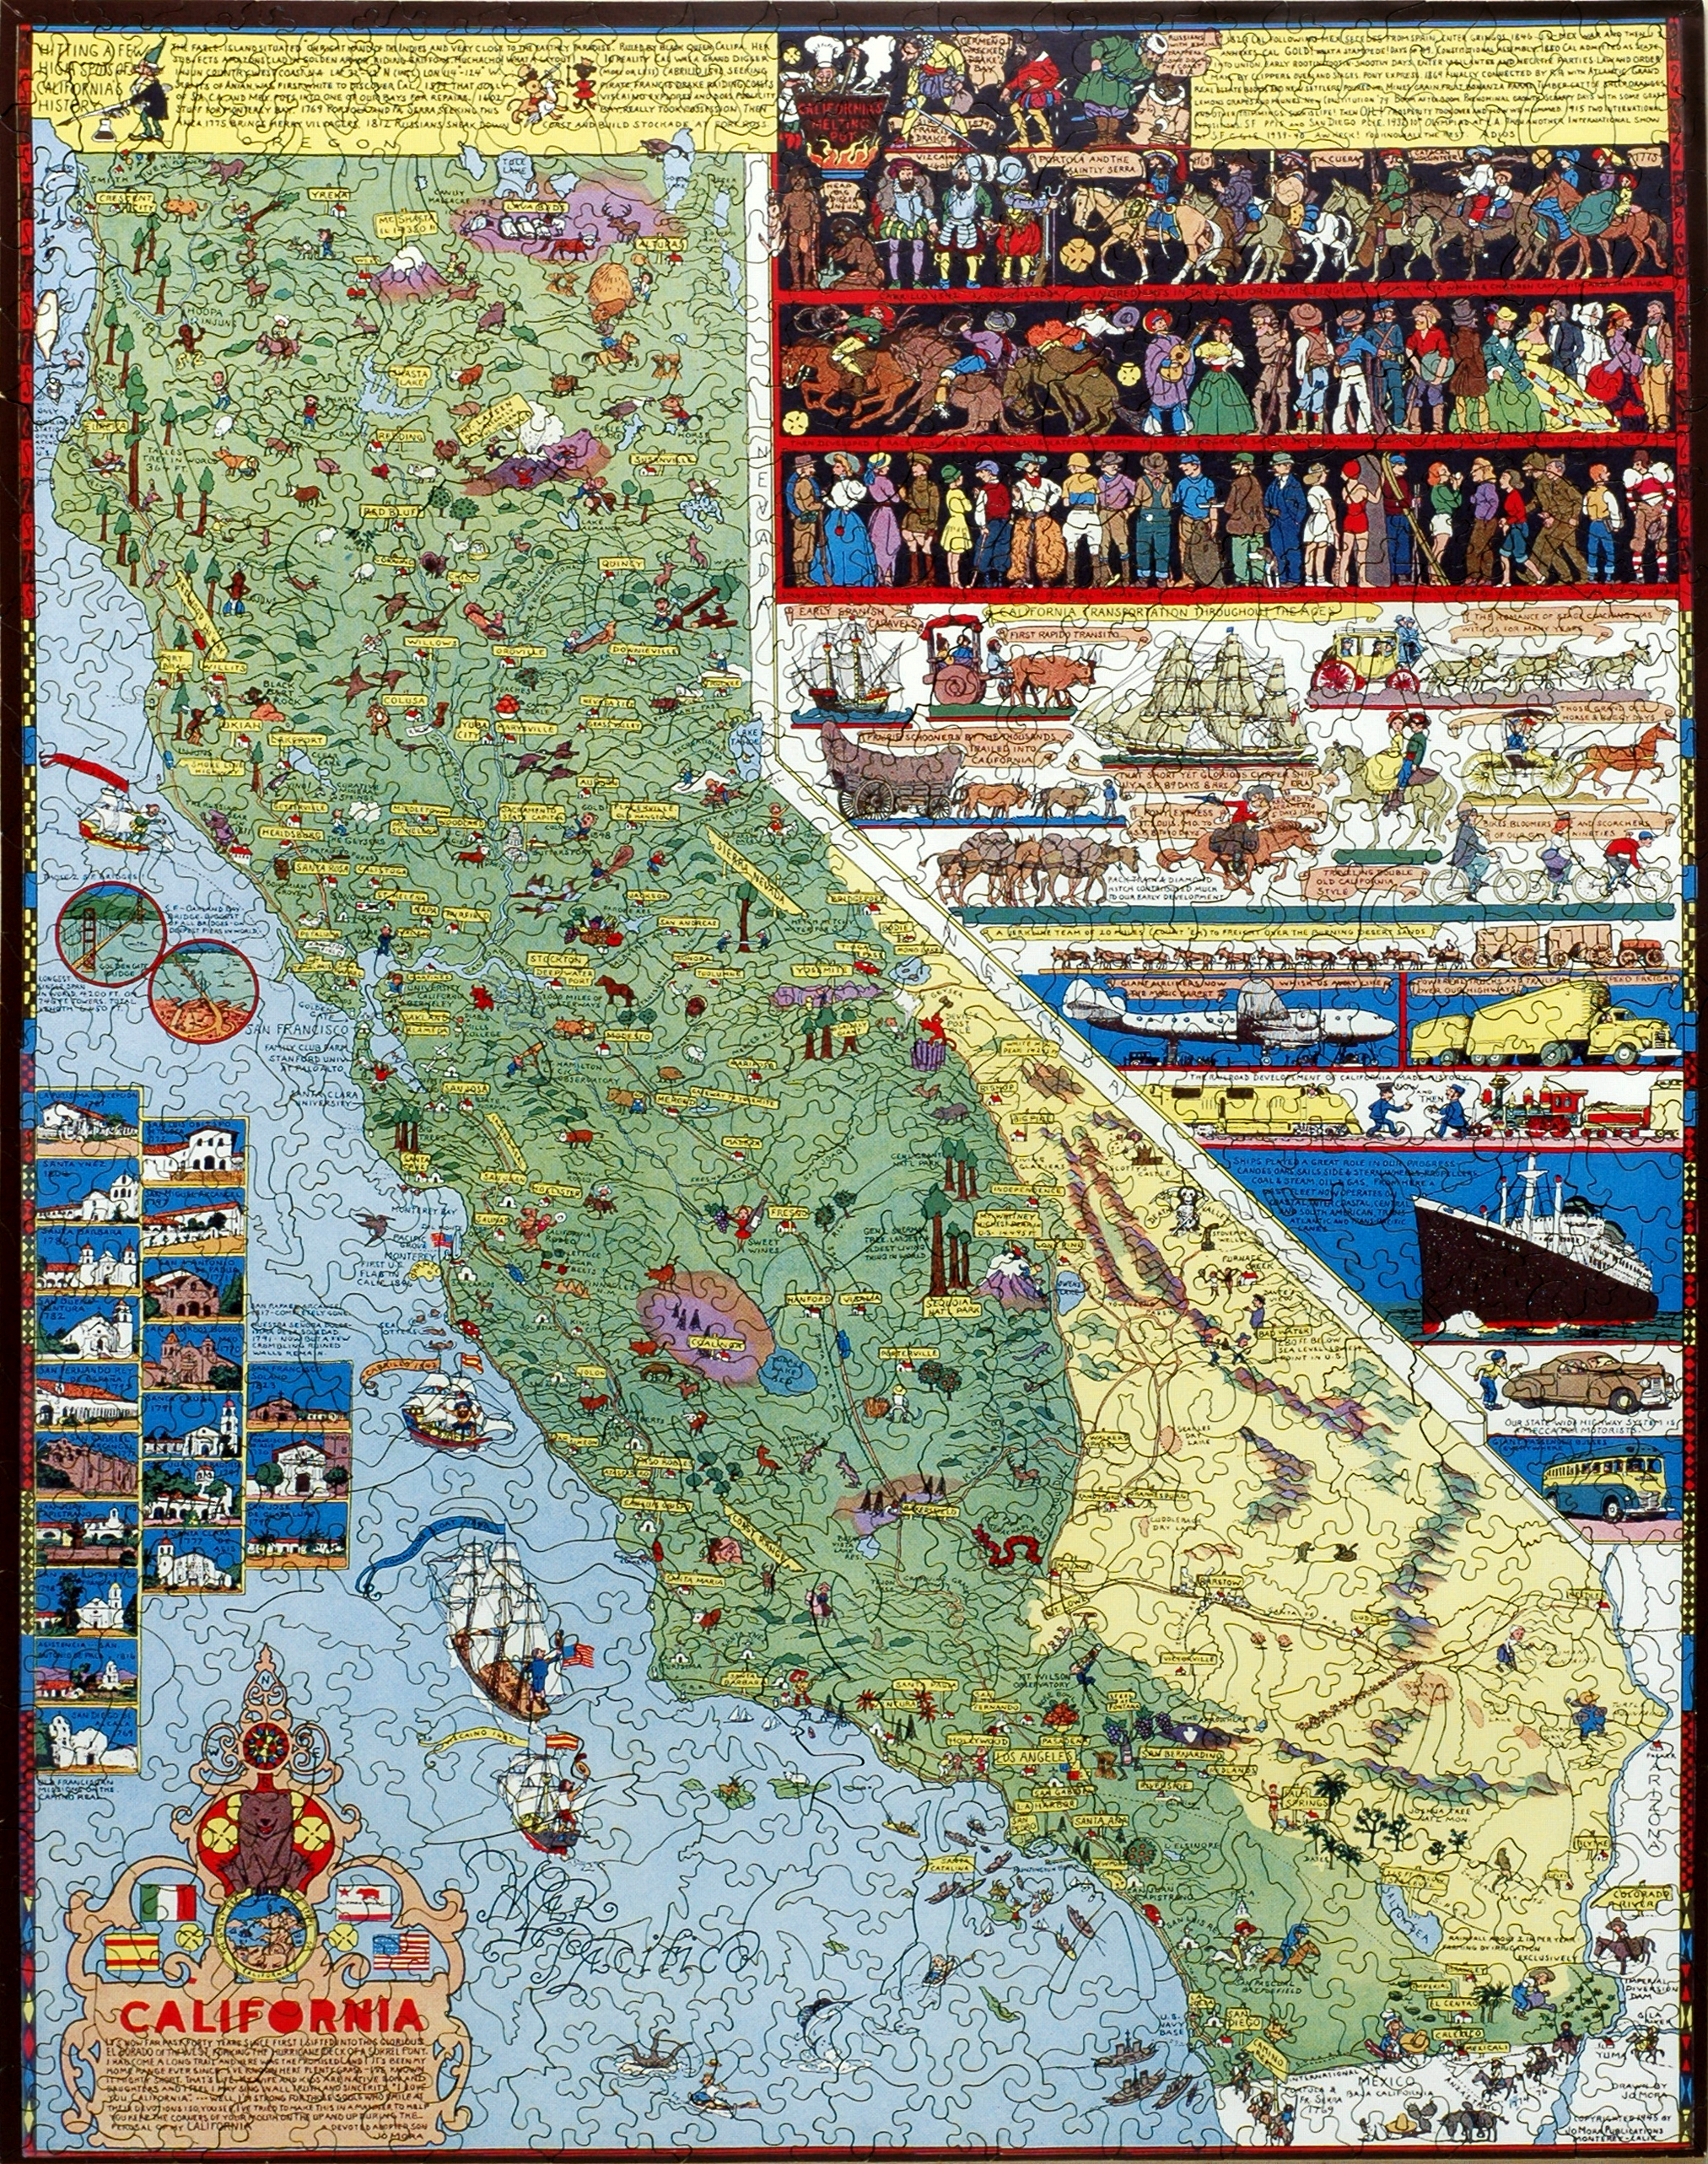 California   Wooden Jigsaw Puzzle   Liberty Puzzles   Made in the USA